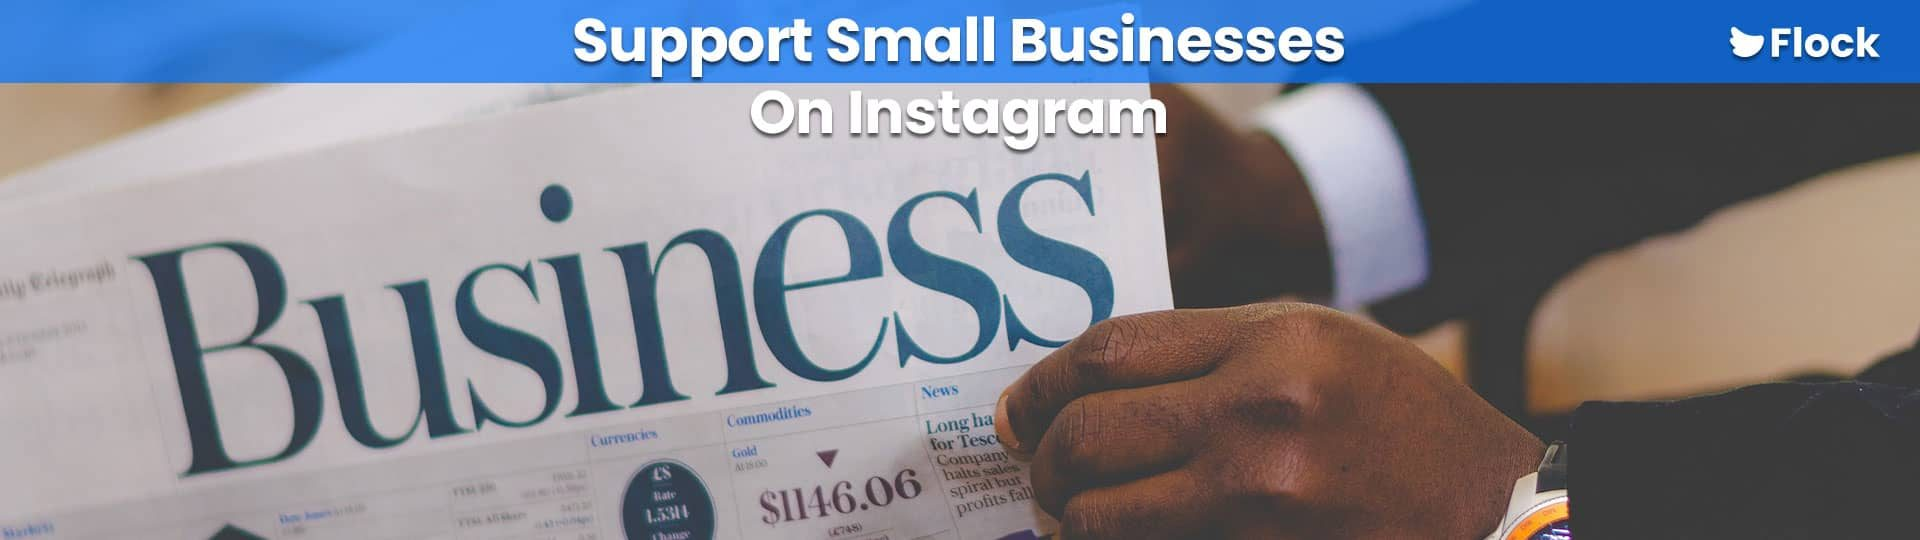 Support-Small-Businesses-Sticker-On-Instagram